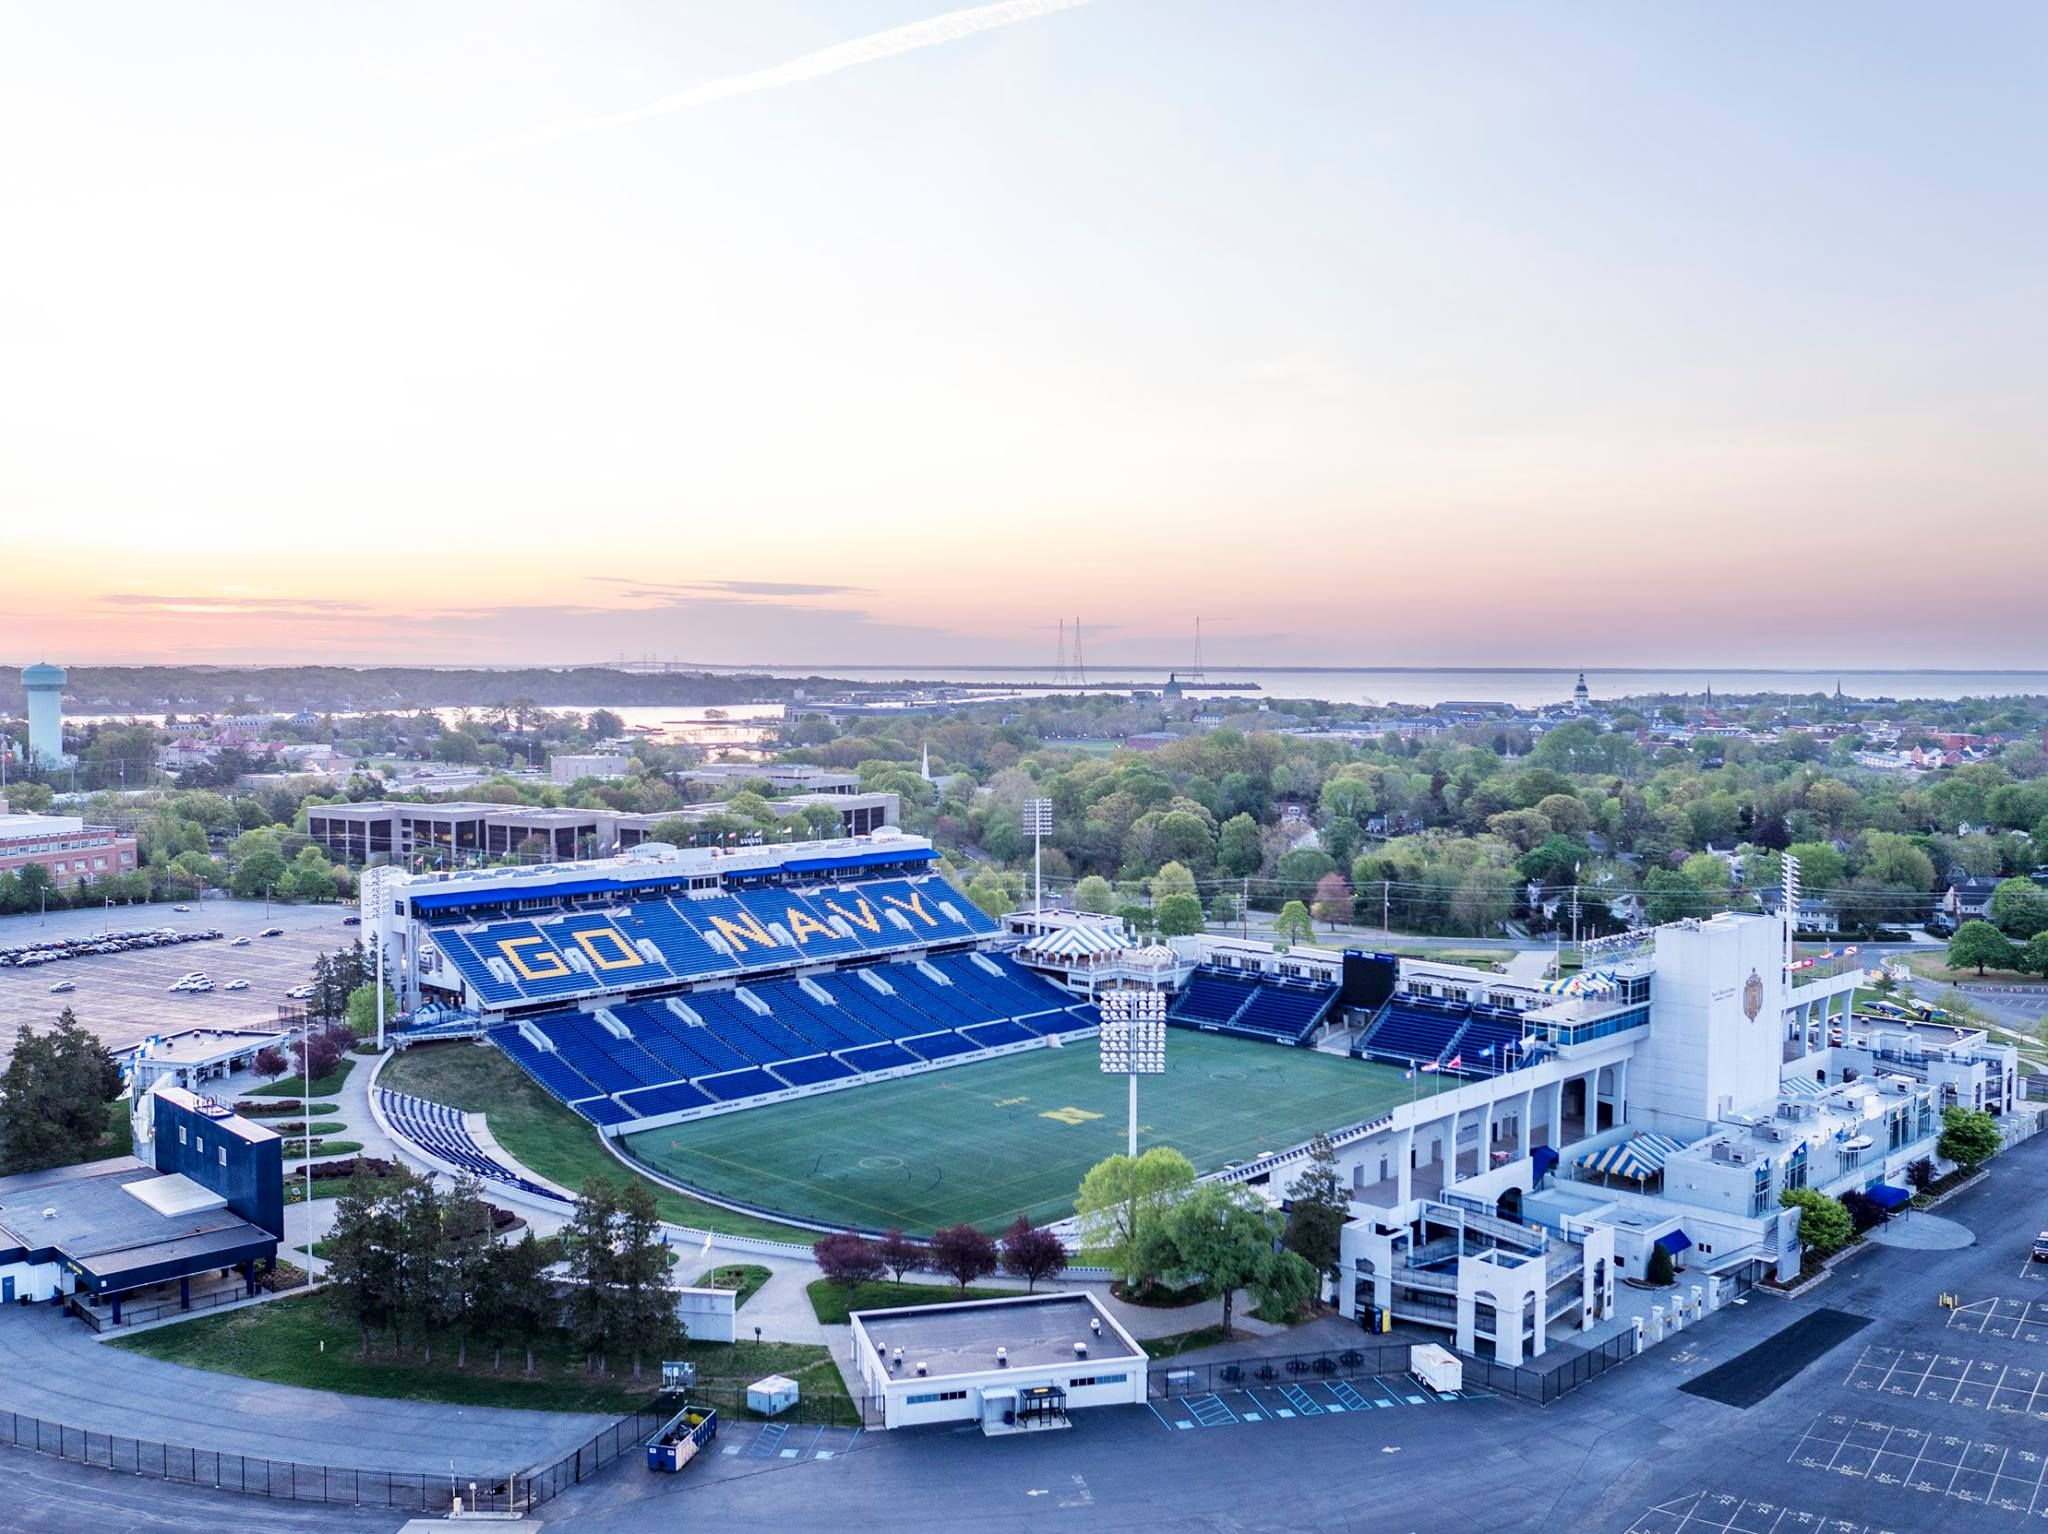 Anne Arundel County Maryland Annapolis Naval Academy Stadium With Images Annapolis Naval Academy Annapolis United States Naval Academy